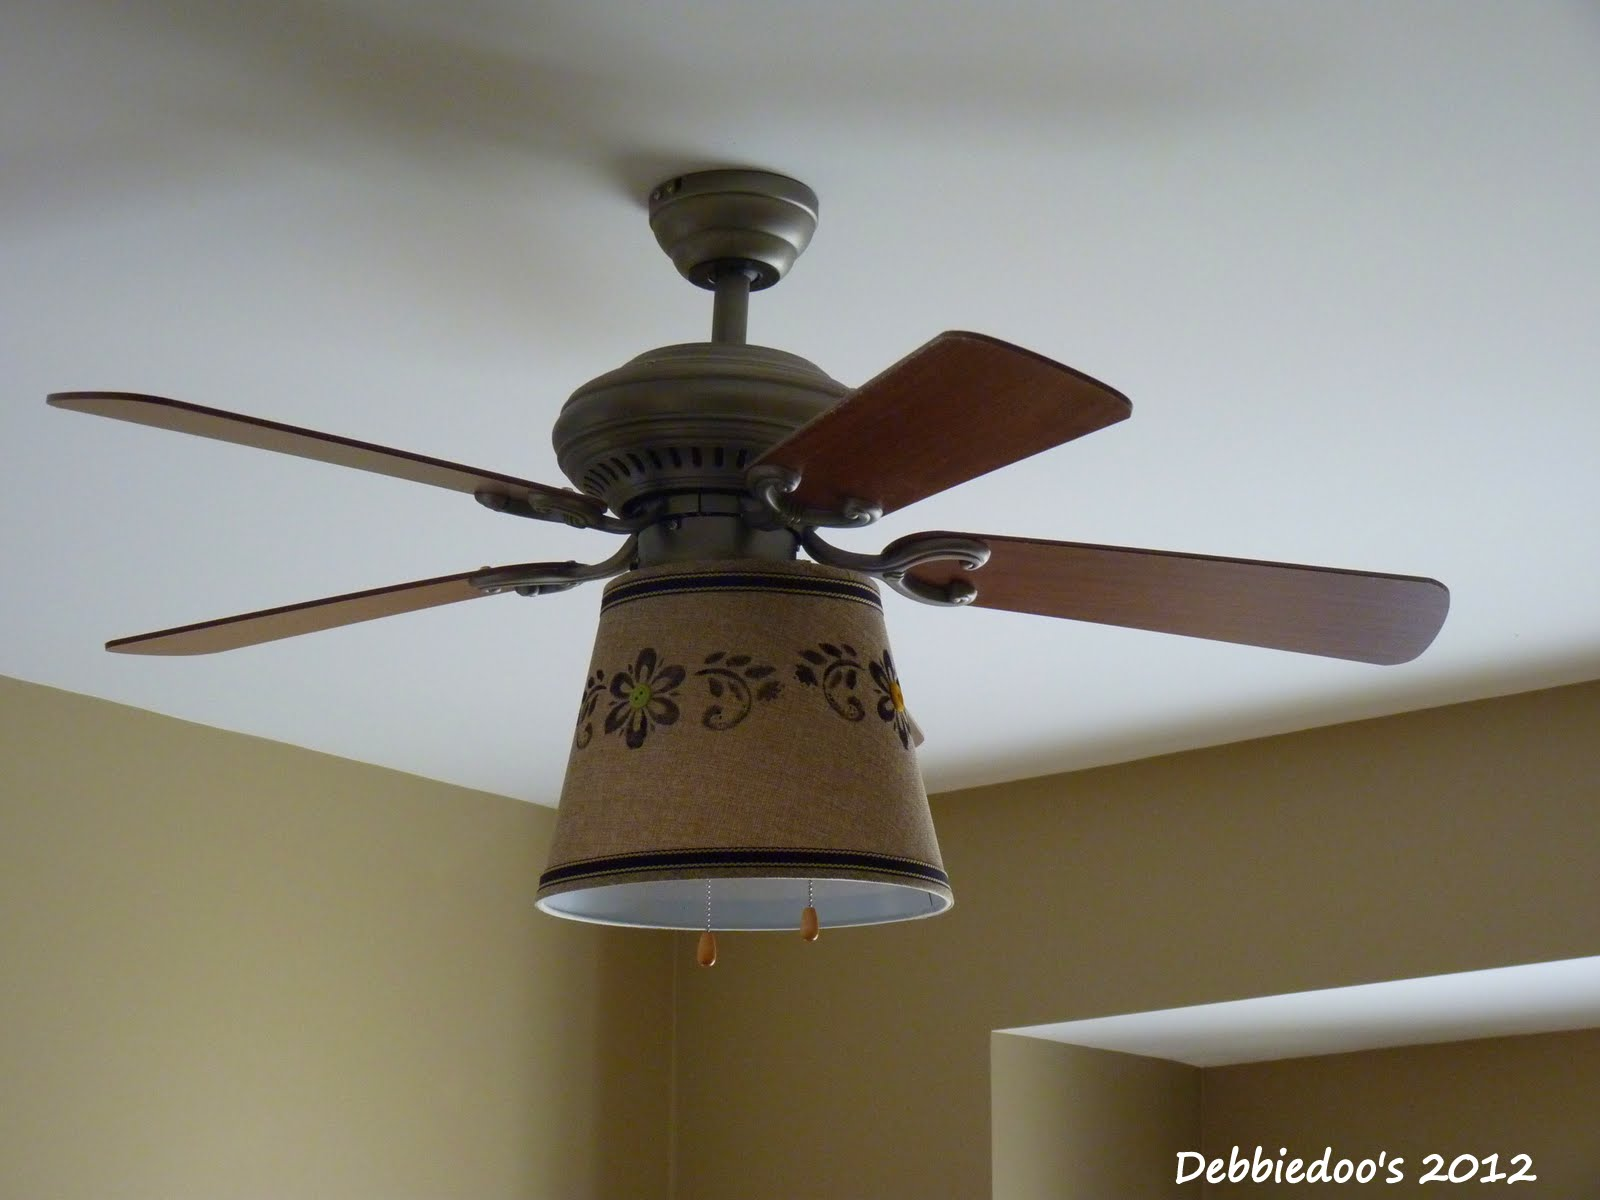 Debbiedoo's: Drum shade for ceiling fan